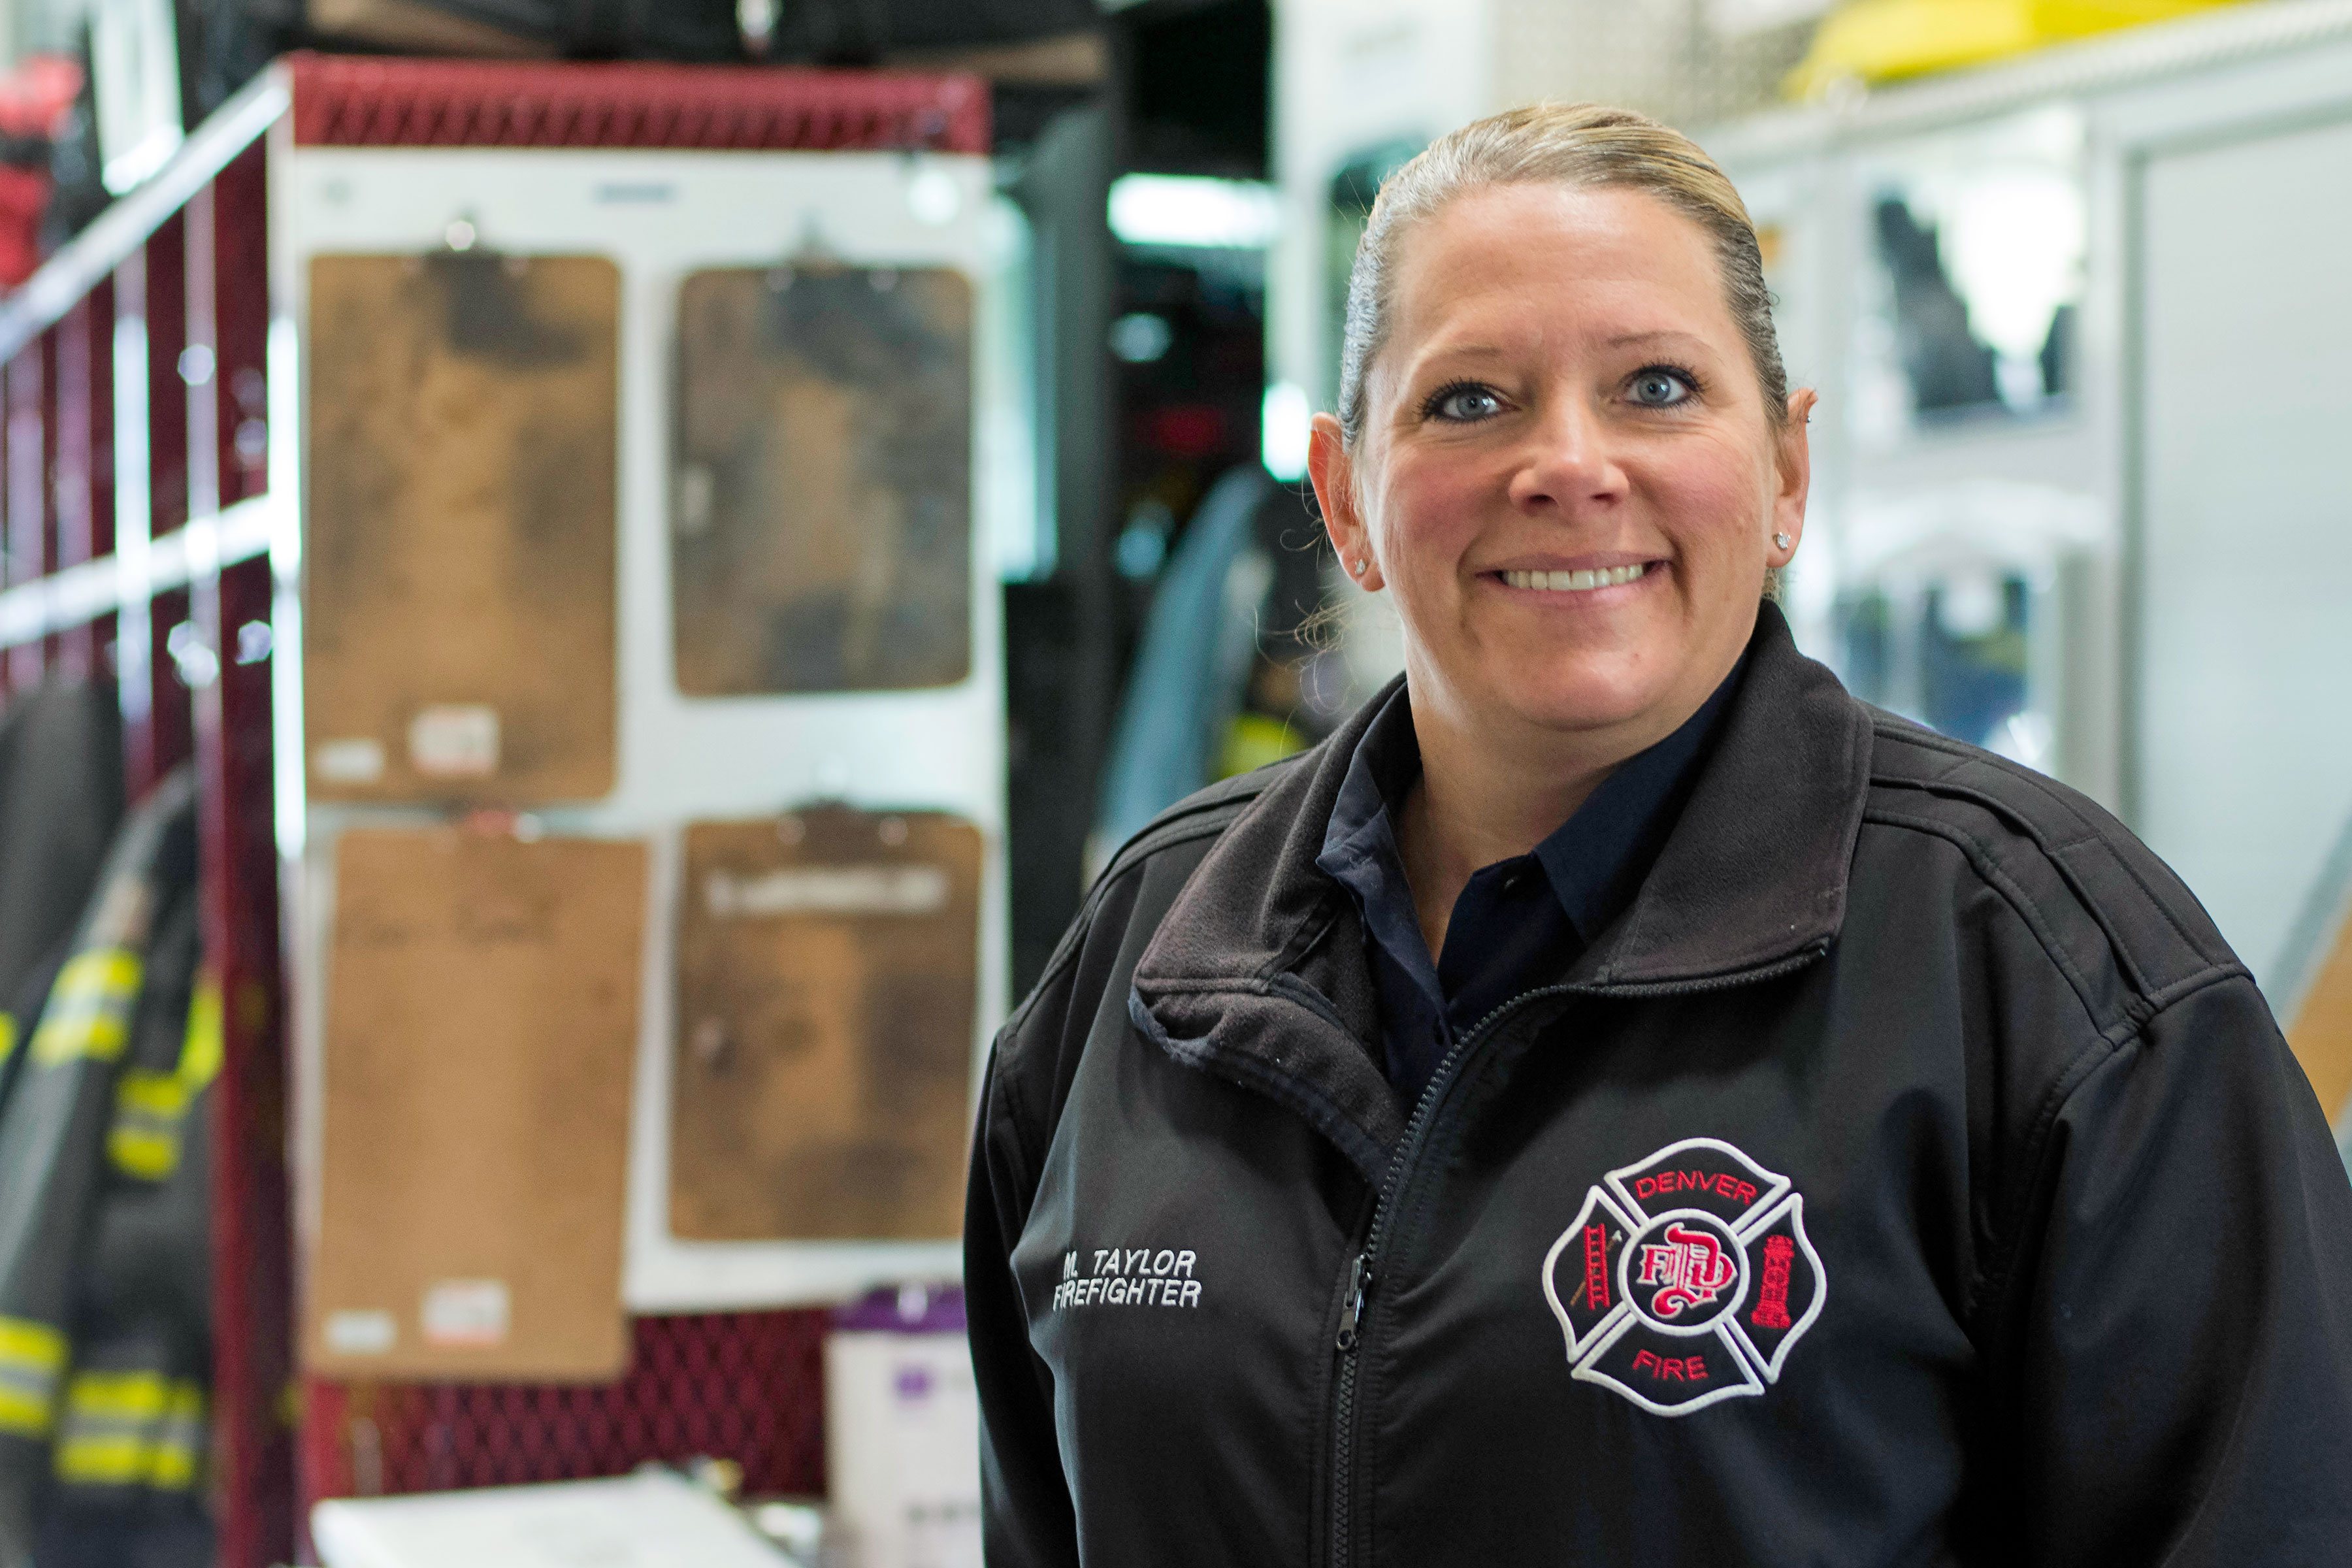 Photo: DIY Spaces City Meeting 1 | Denver FD Spox Melissa Taylor - CJones